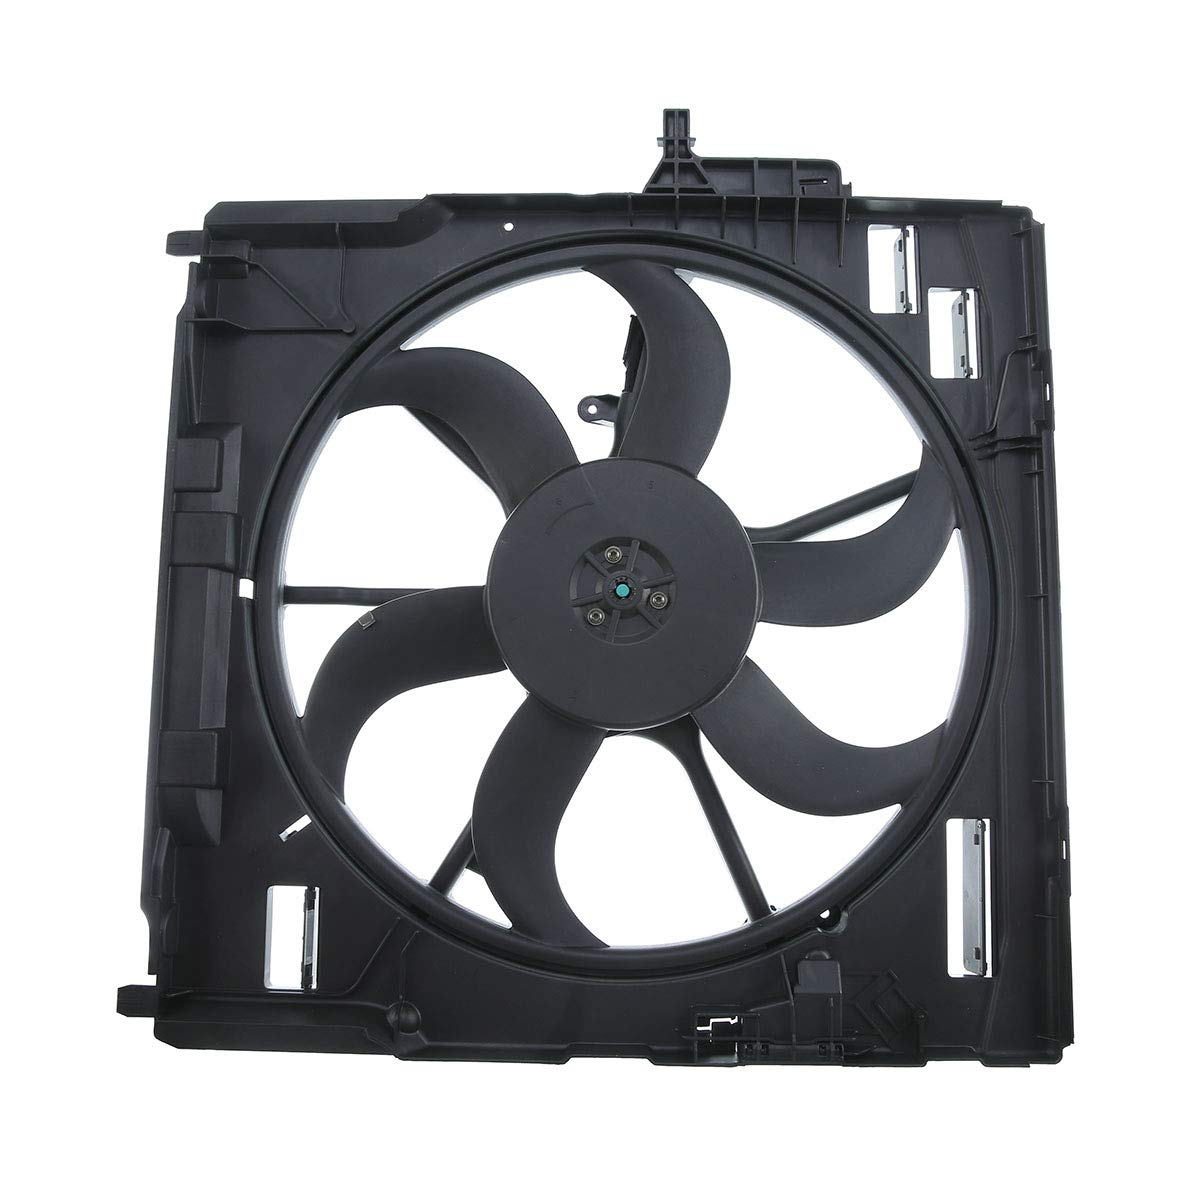 A-Premium Radiator Engine Cooling Fan Assembly with Motor for BMW X5 2007-2010